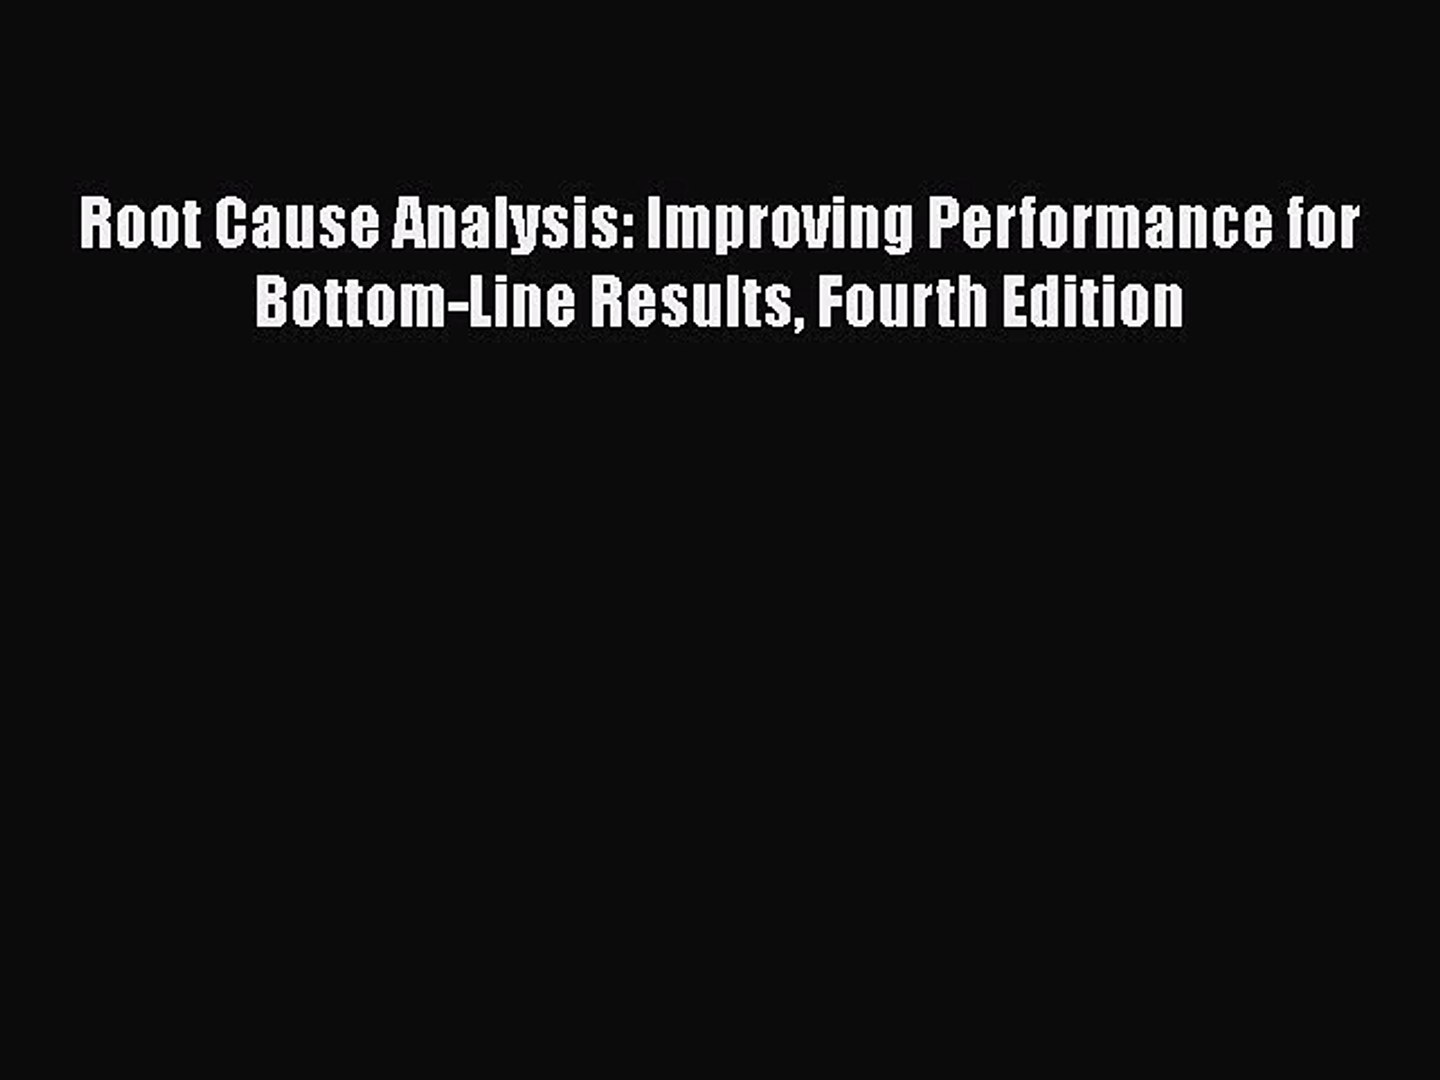 Download Root Cause Analysis: Improving Performance for Bottom-Line Results Fourth Edition